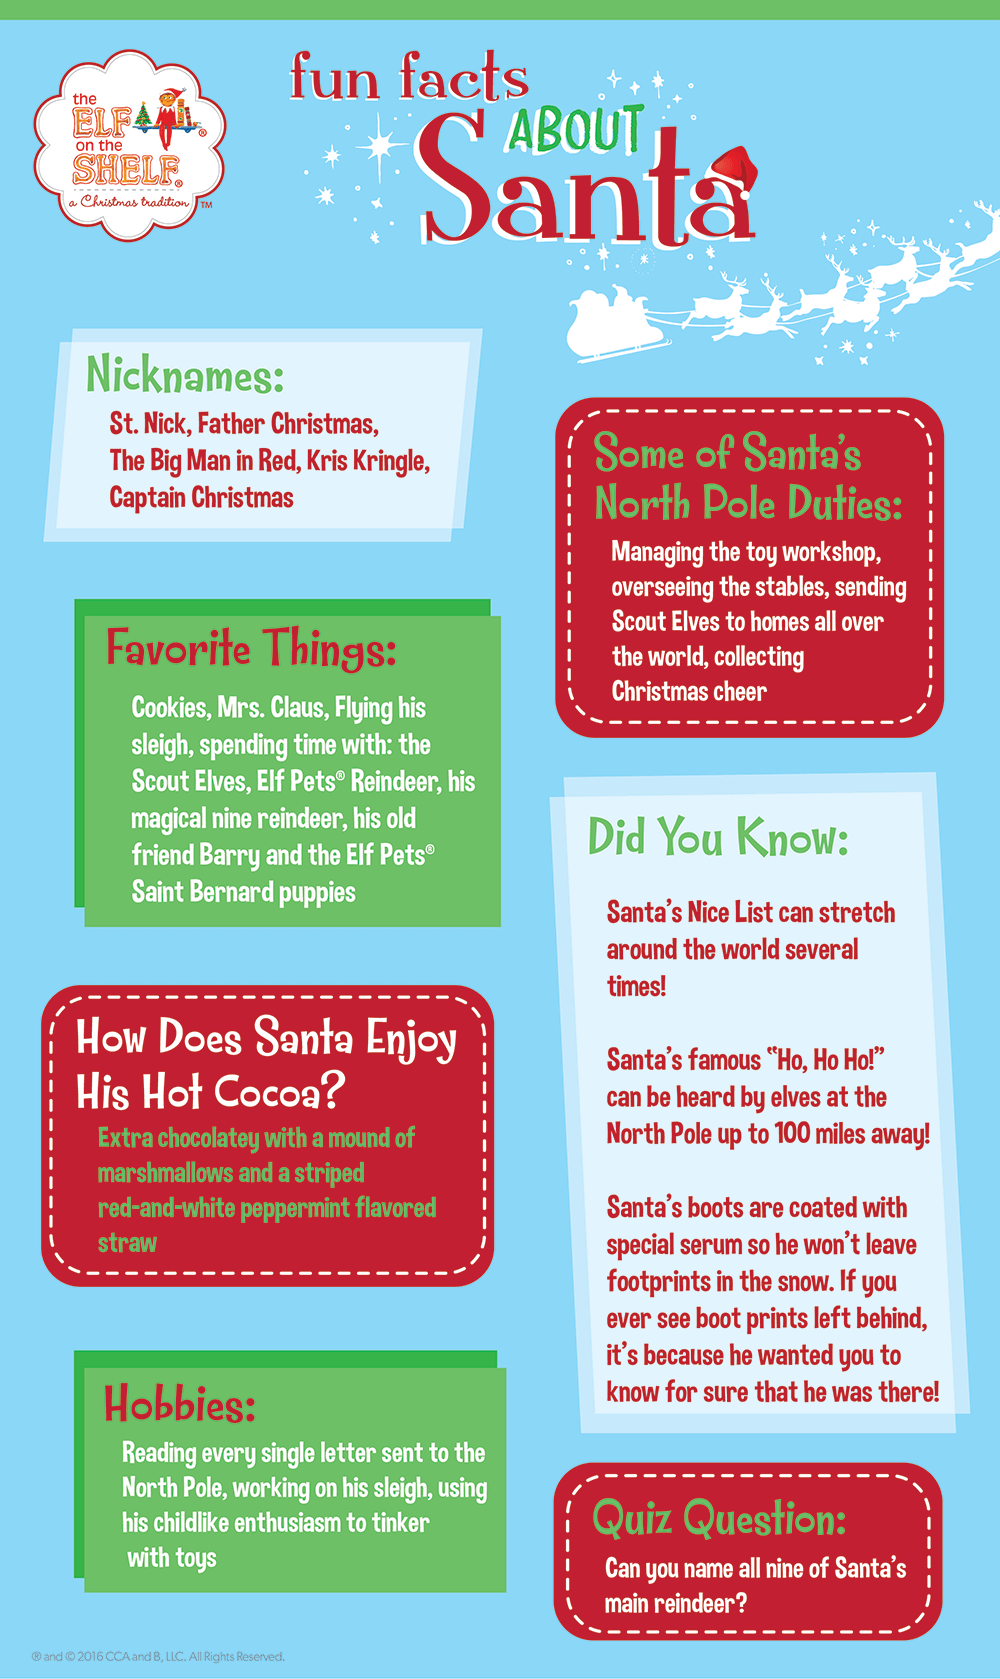 Fun Facts about Santa  – The Elf on the Shelf